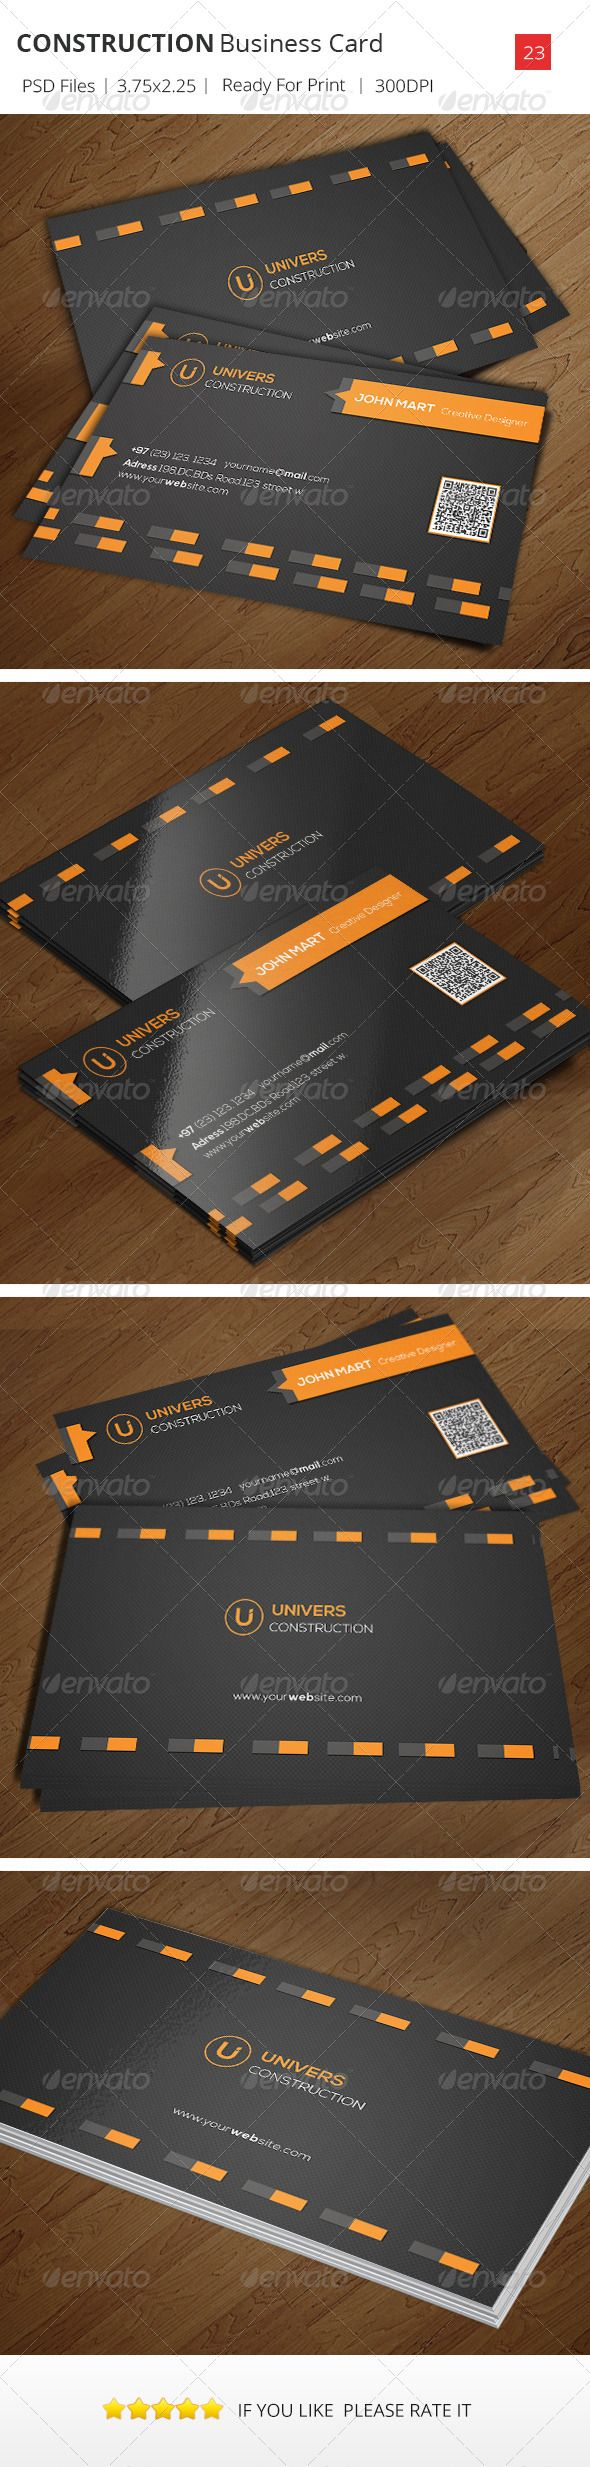 Best 25 construction business cards ideas on pinterest business best 25 construction business cards ideas on pinterest business card design print business cards online and simple business cards magicingreecefo Gallery